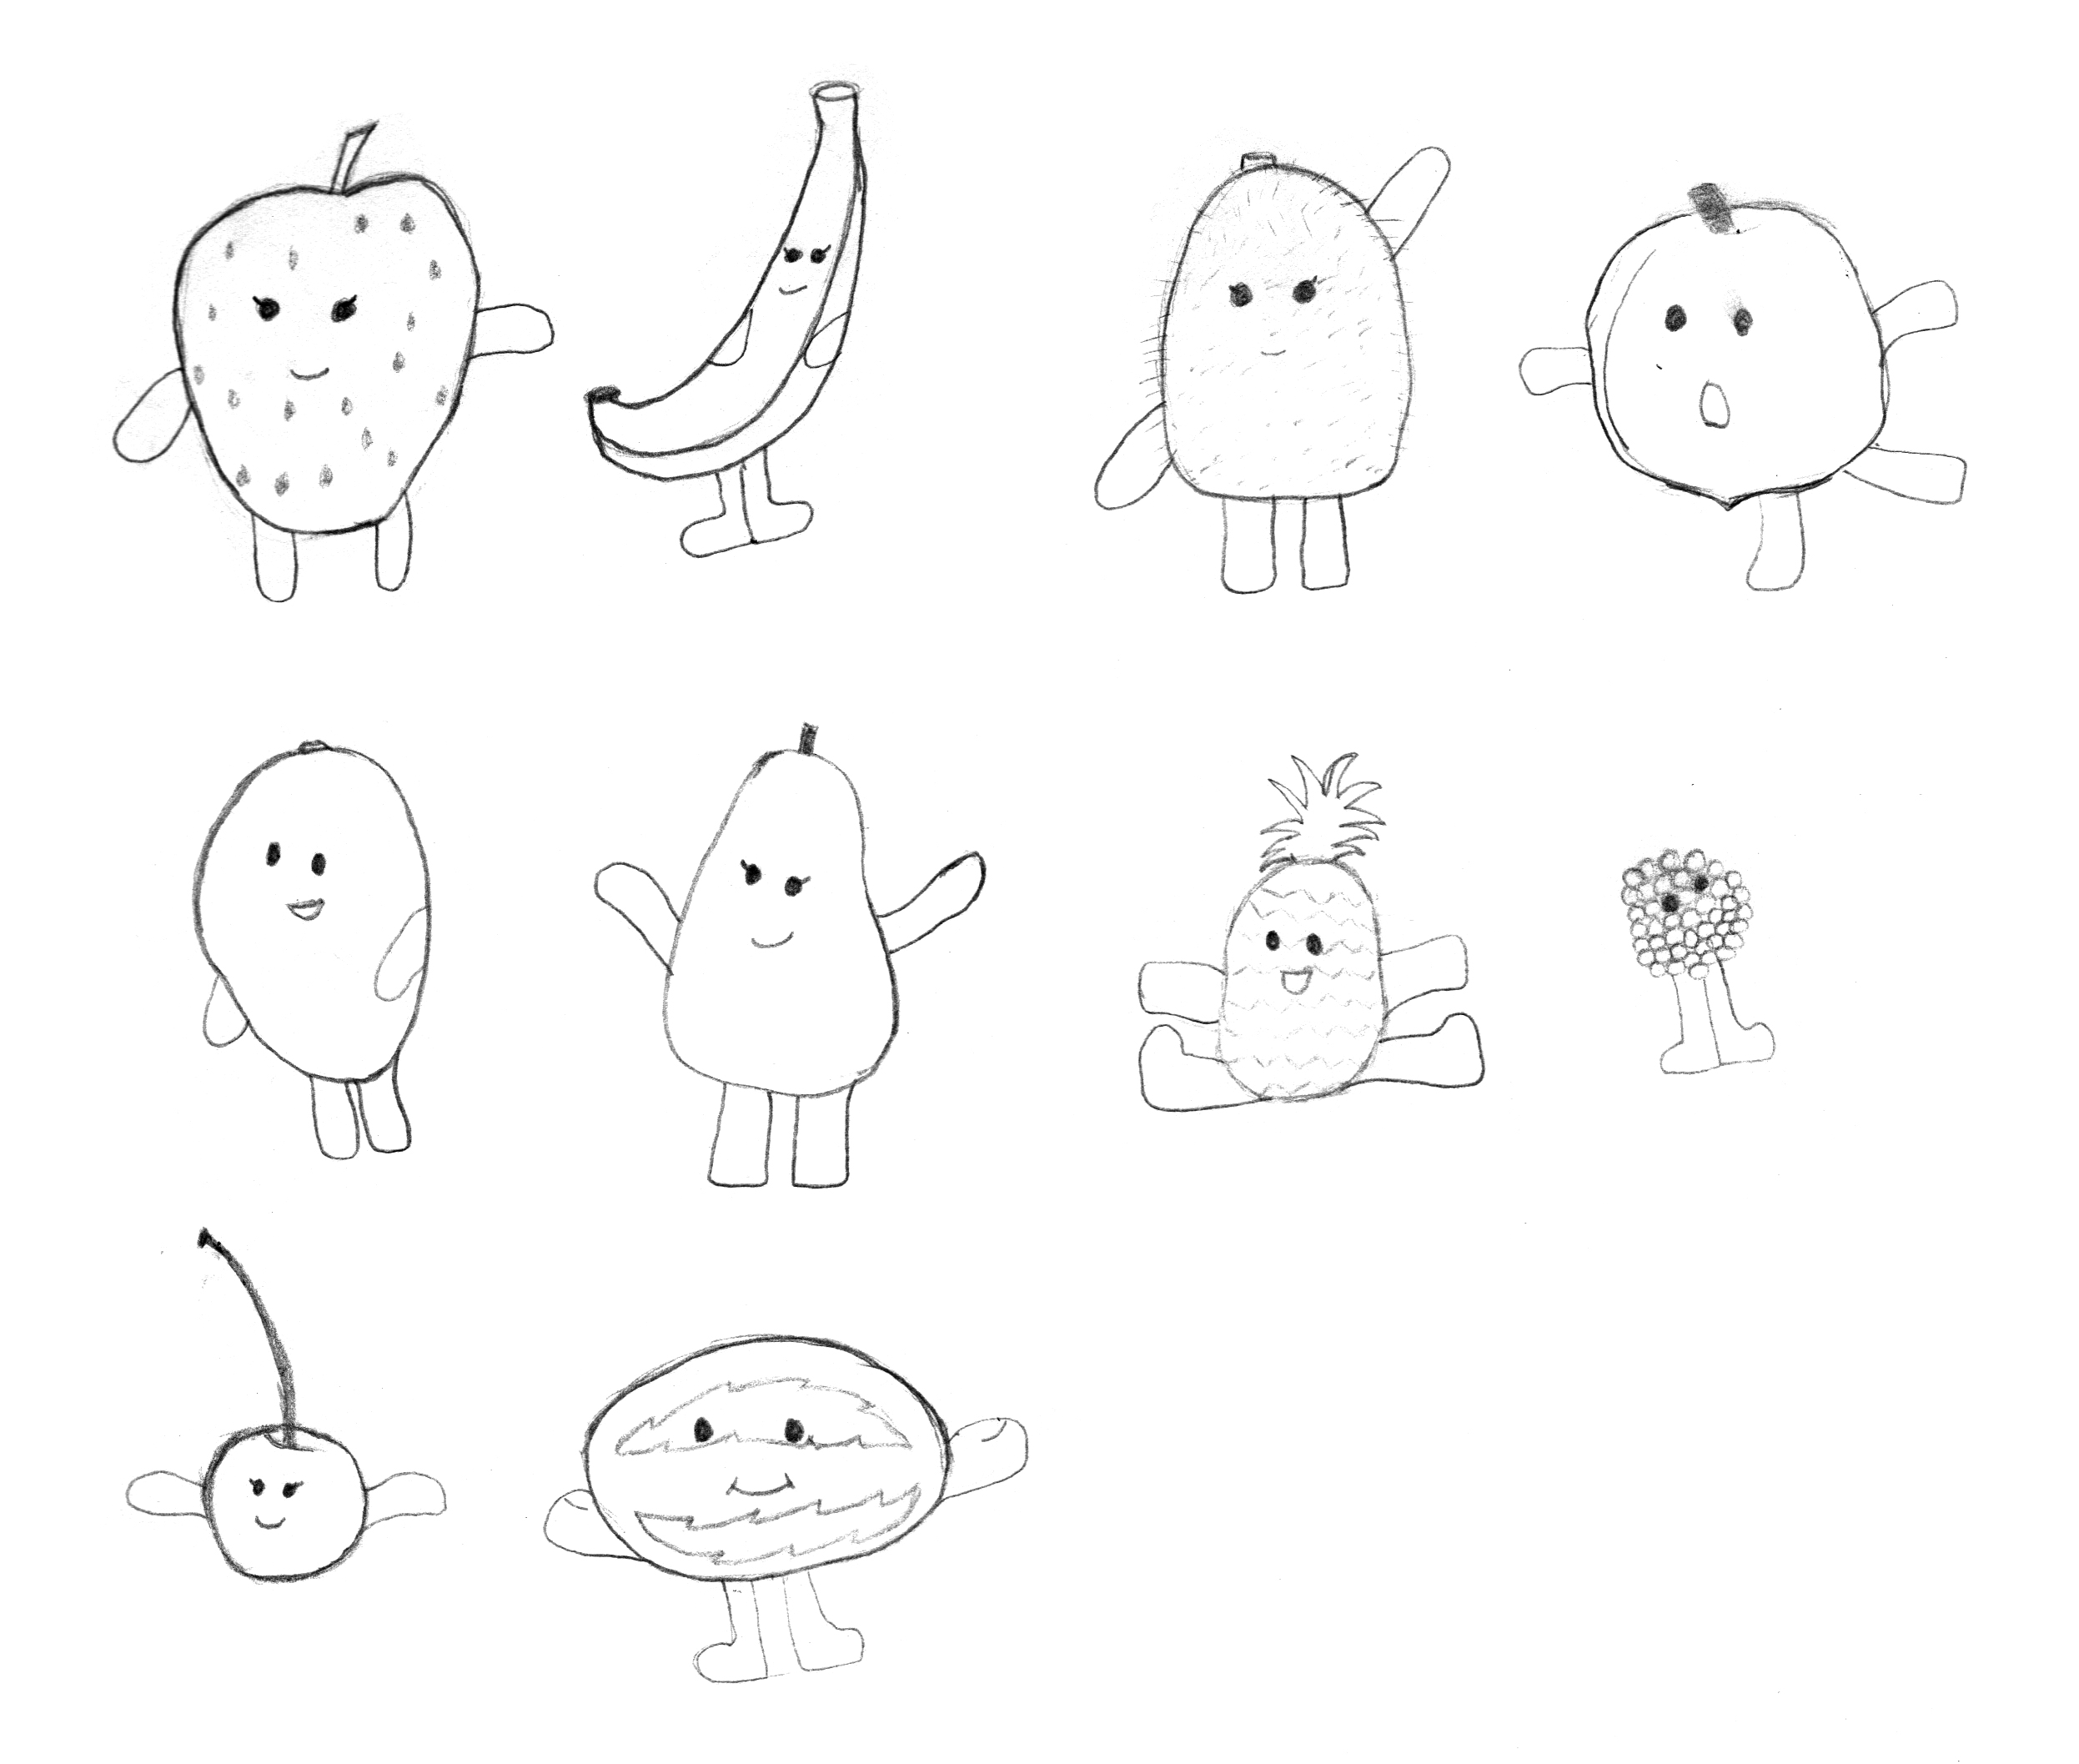 characters_sketch